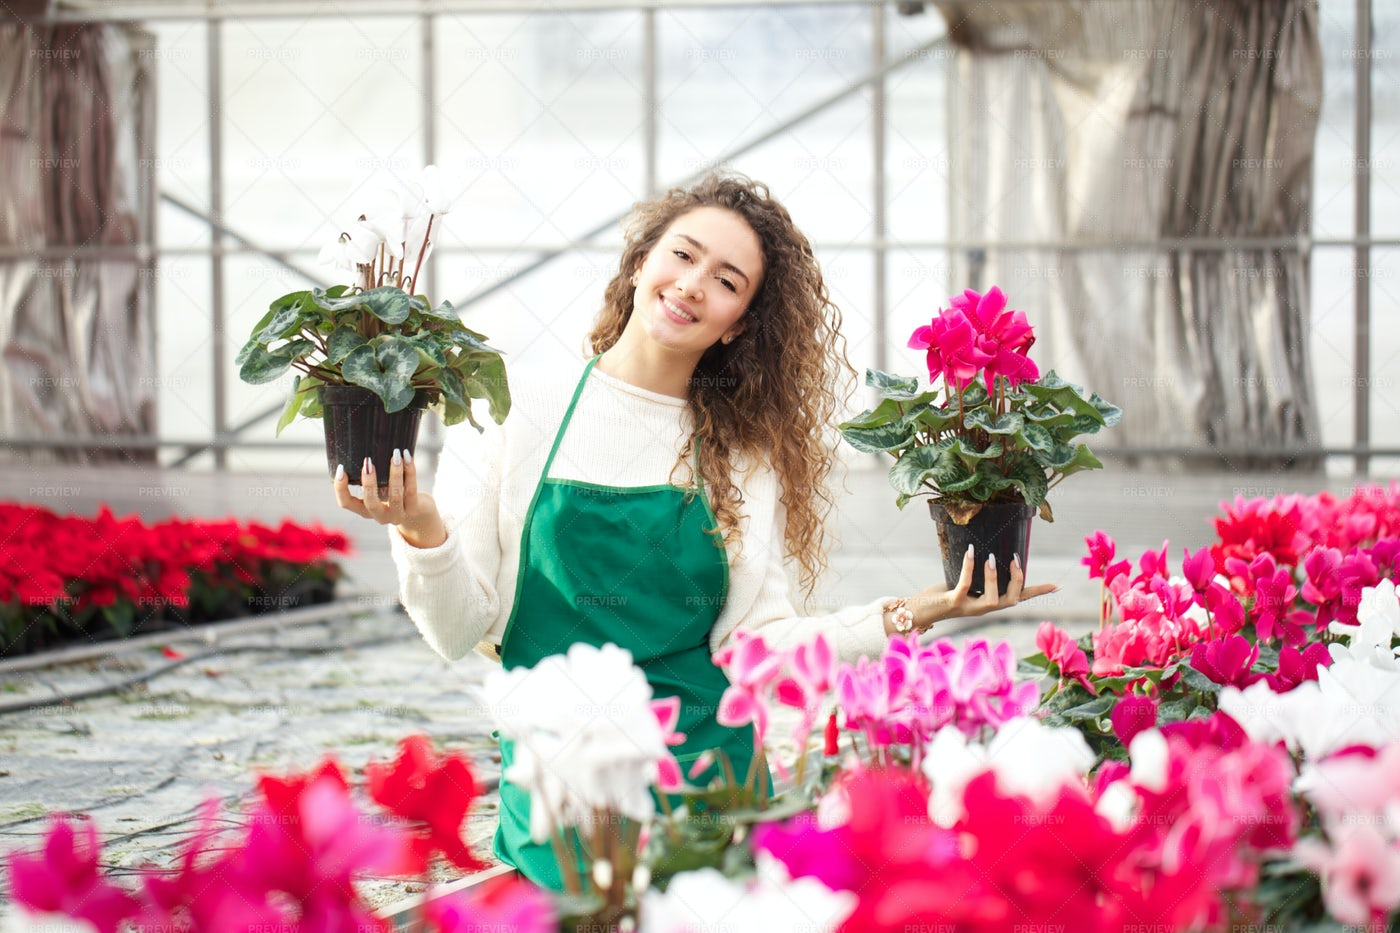 Woman Holds Potted Plants: Stock Photos